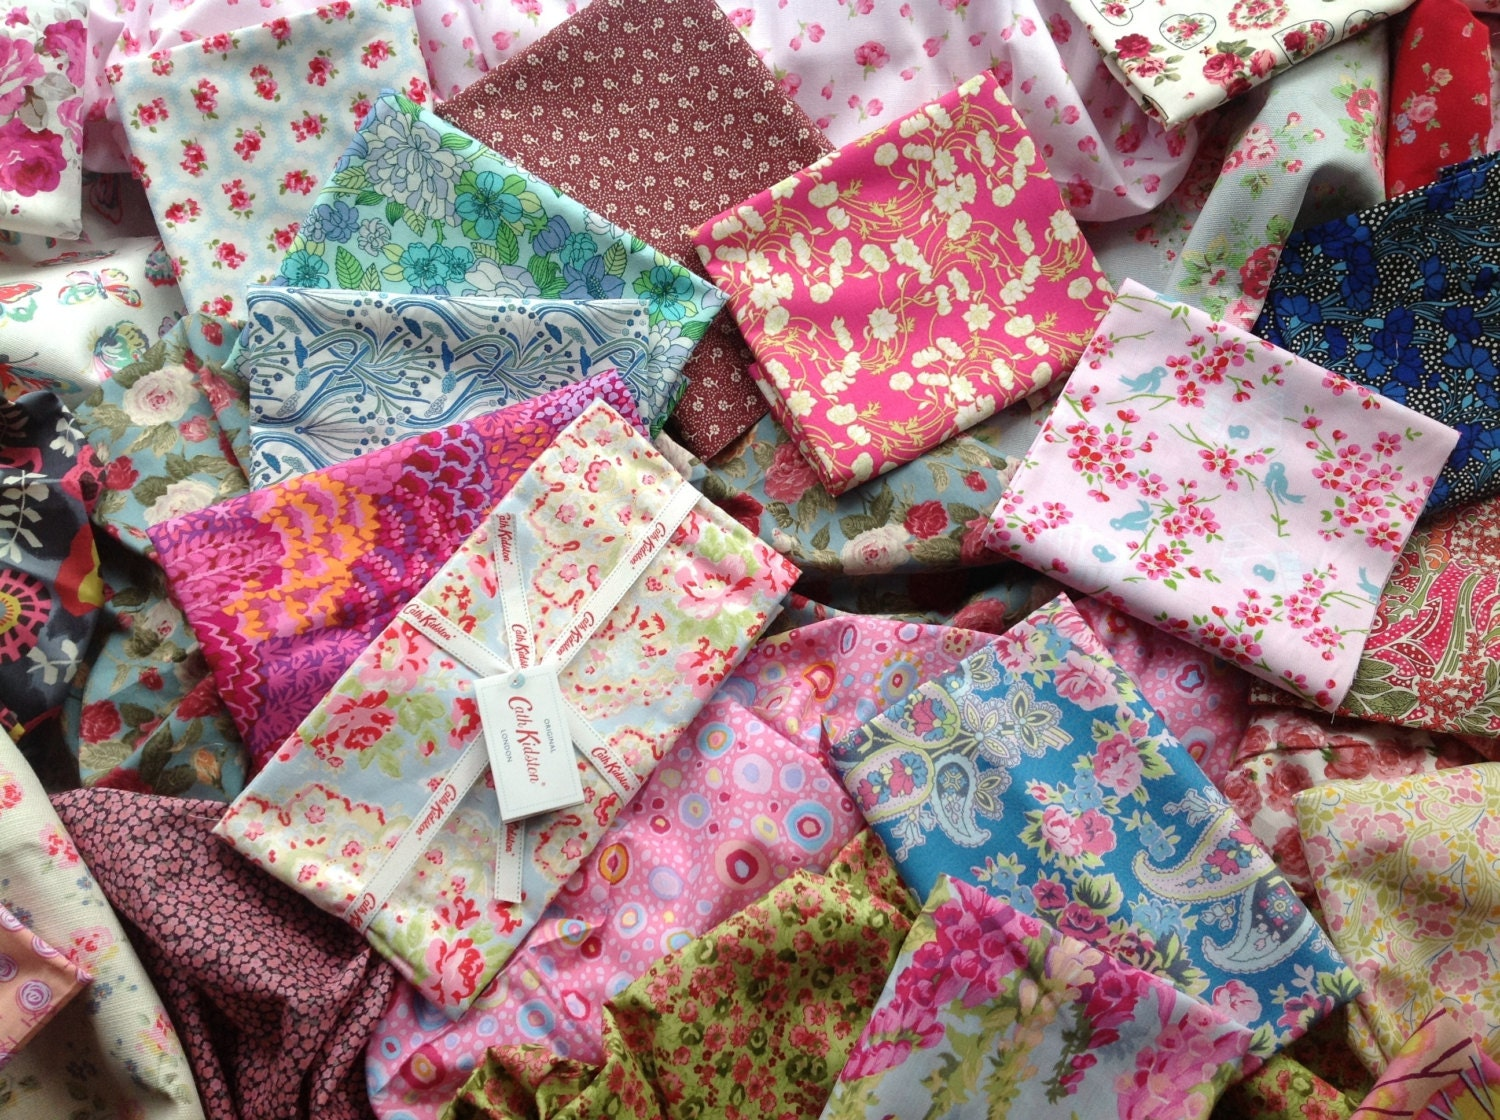 Over 60 scraps of cath kidston liberty and laura ashley fabric